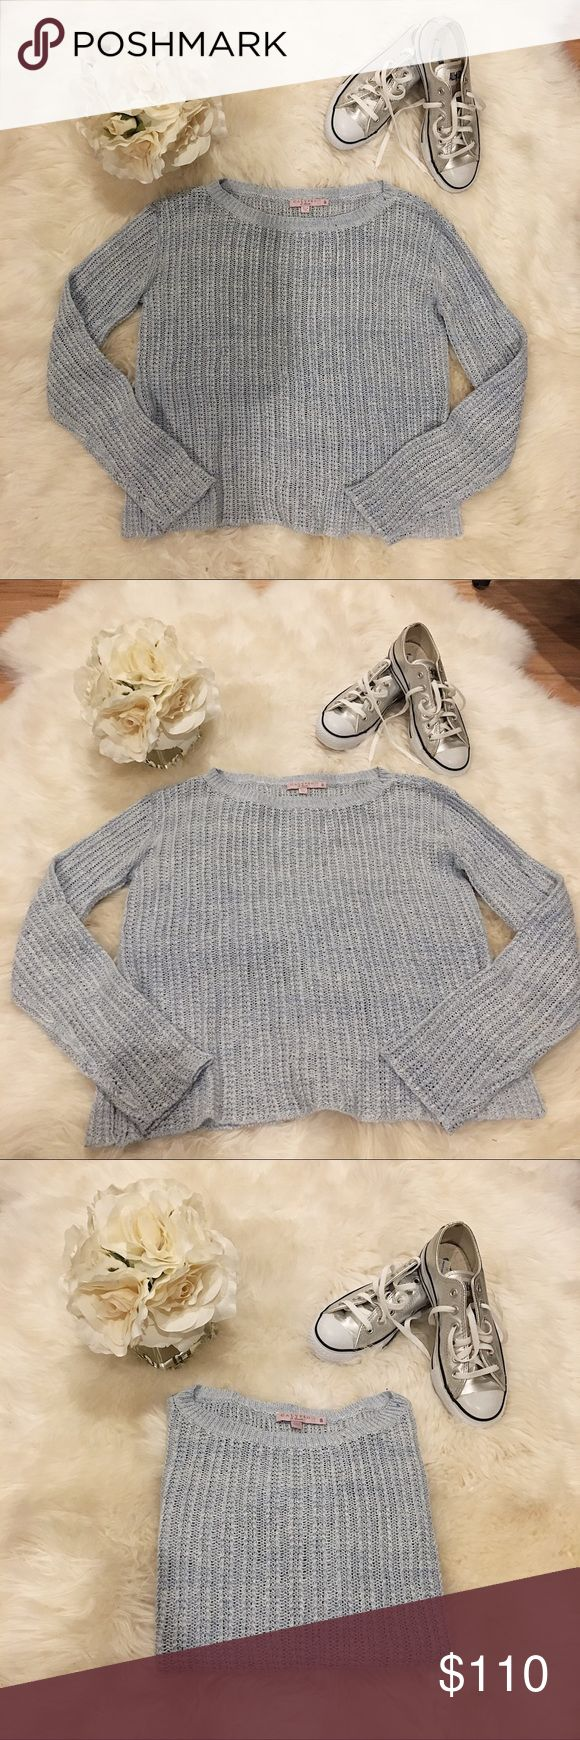 Calypso St. Barth Blue Knit Sweater. Soft light blue color, and in excellent condition. Really nice with white jeans. Can be layered, and dressed up with wedges and jeans or down with shorts or a skirt. Calypso St. Barth Sweaters Crew & Scoop Necks